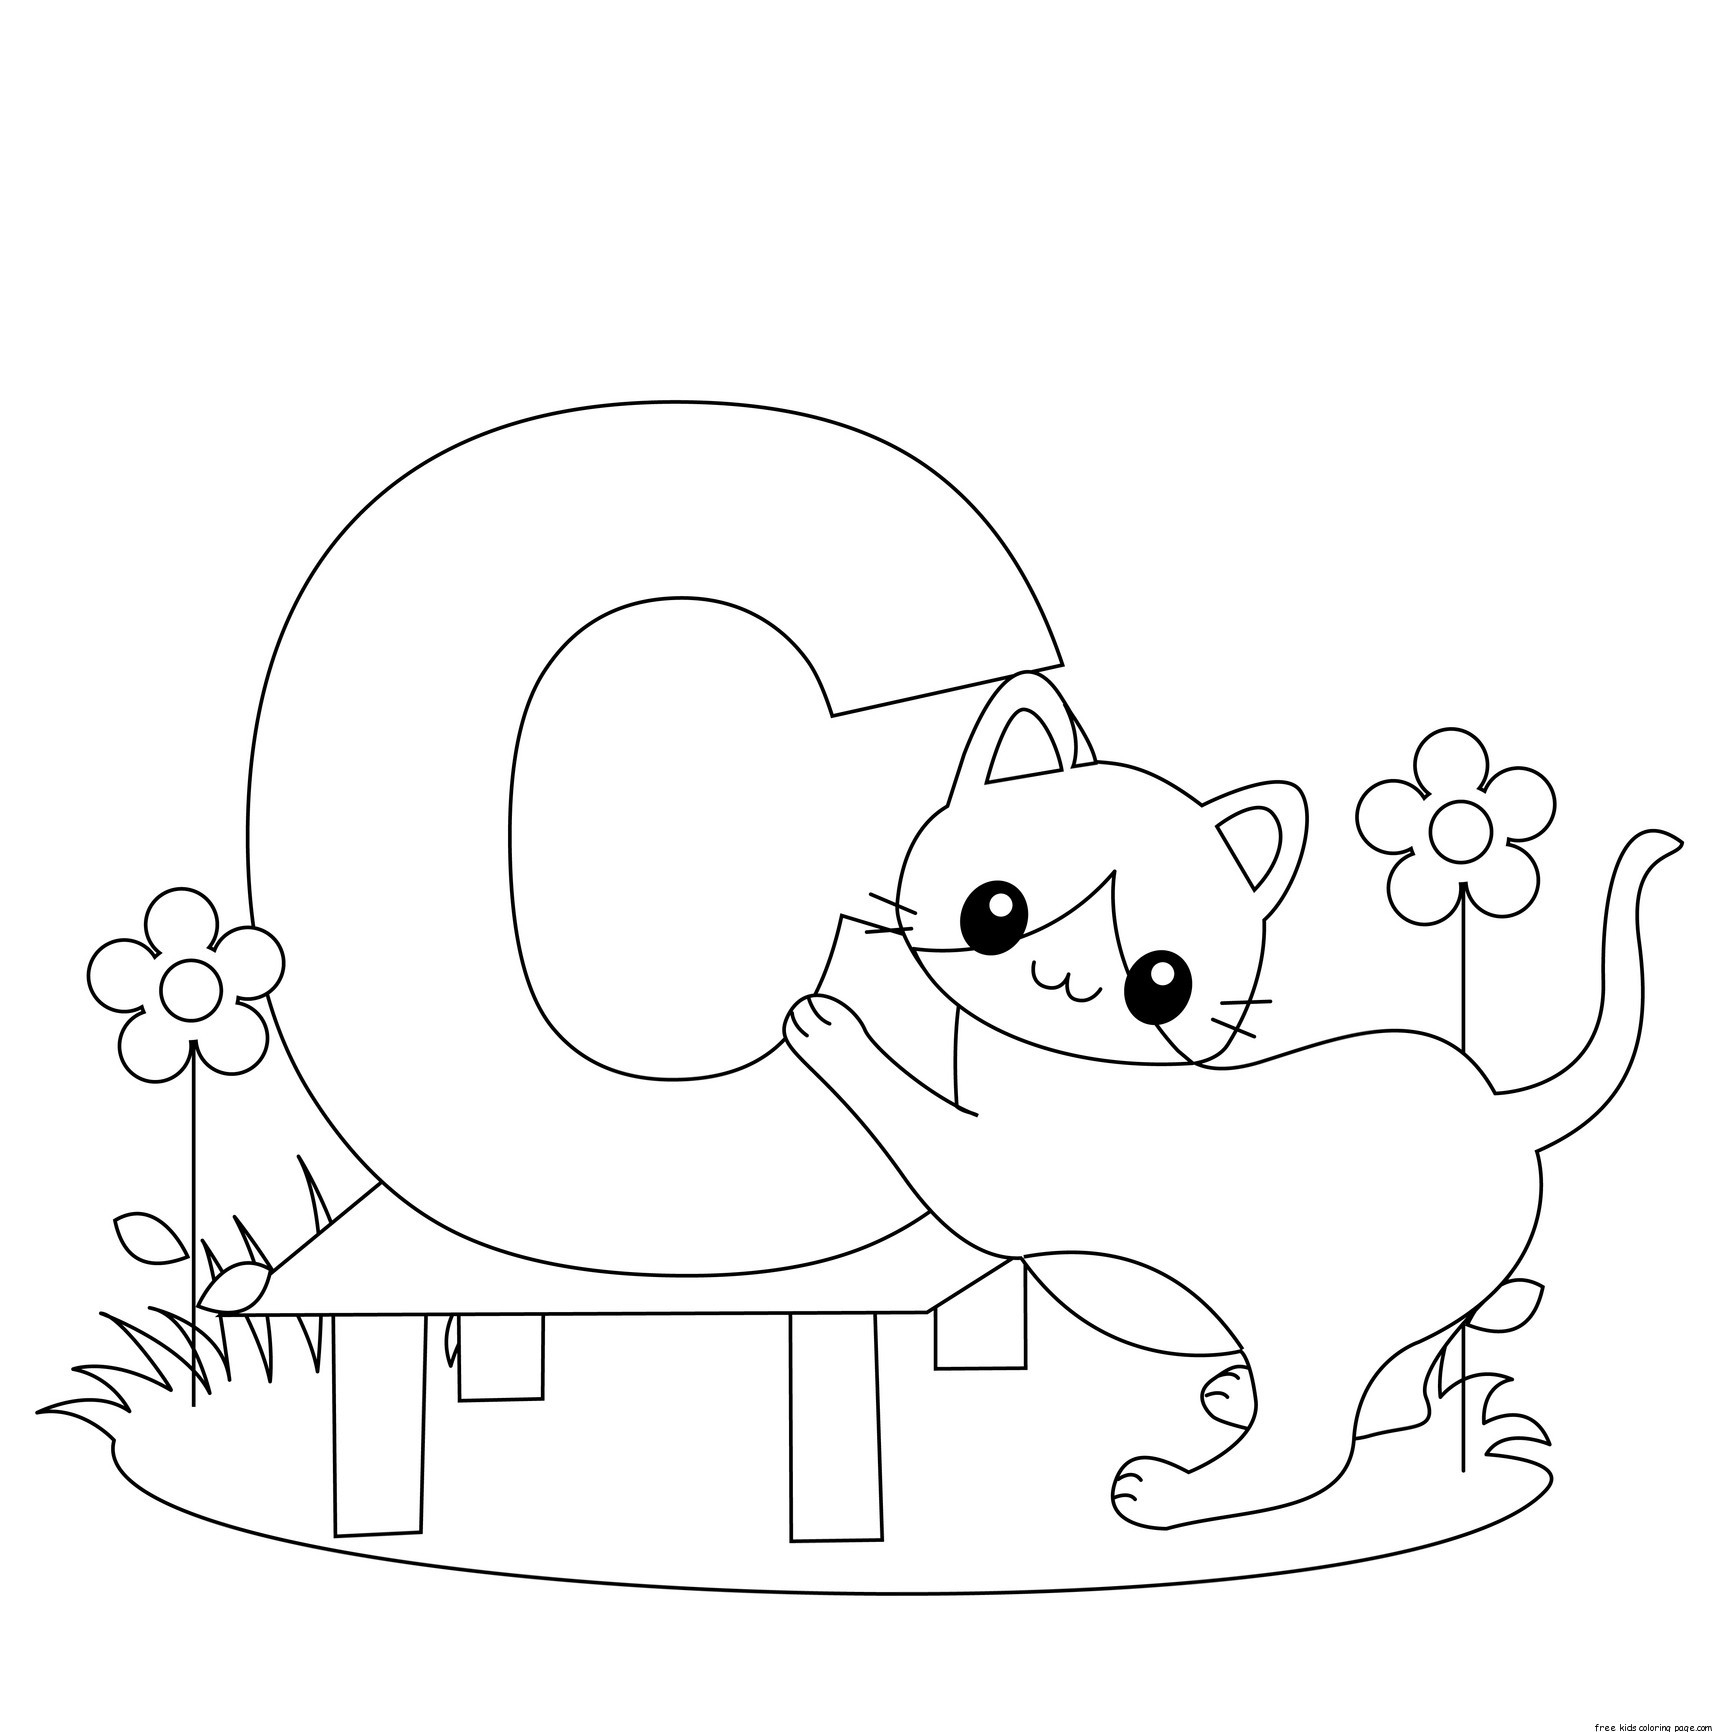 Animal Alphabet Coloring Pages  Collection 10n - To print for your project